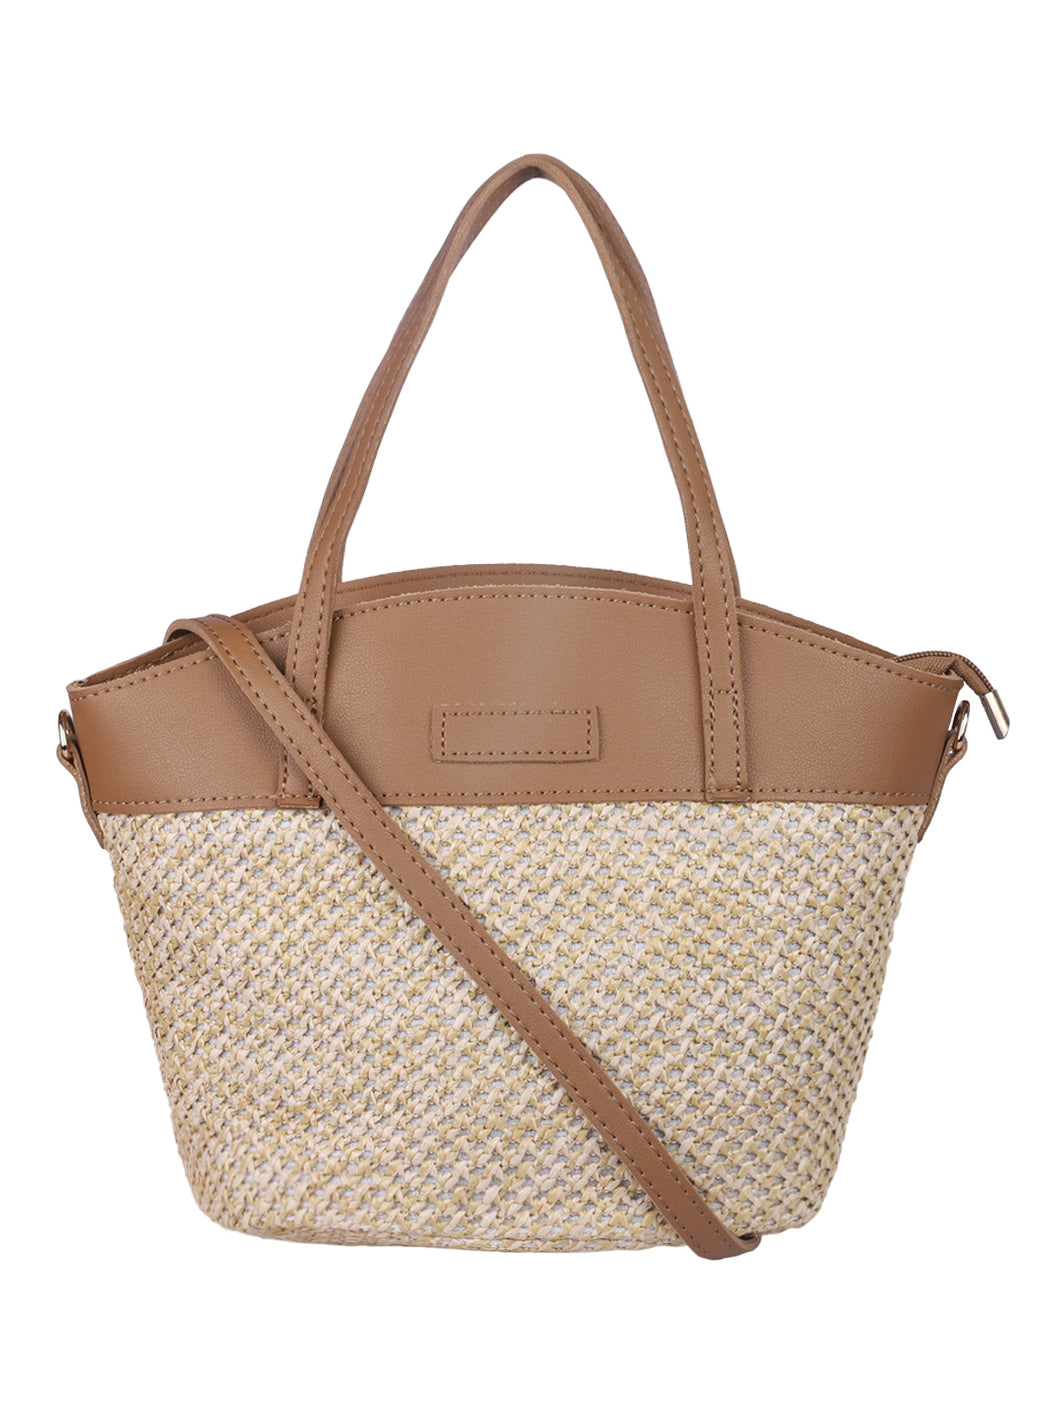 Two-toned Straw Tote-Brown